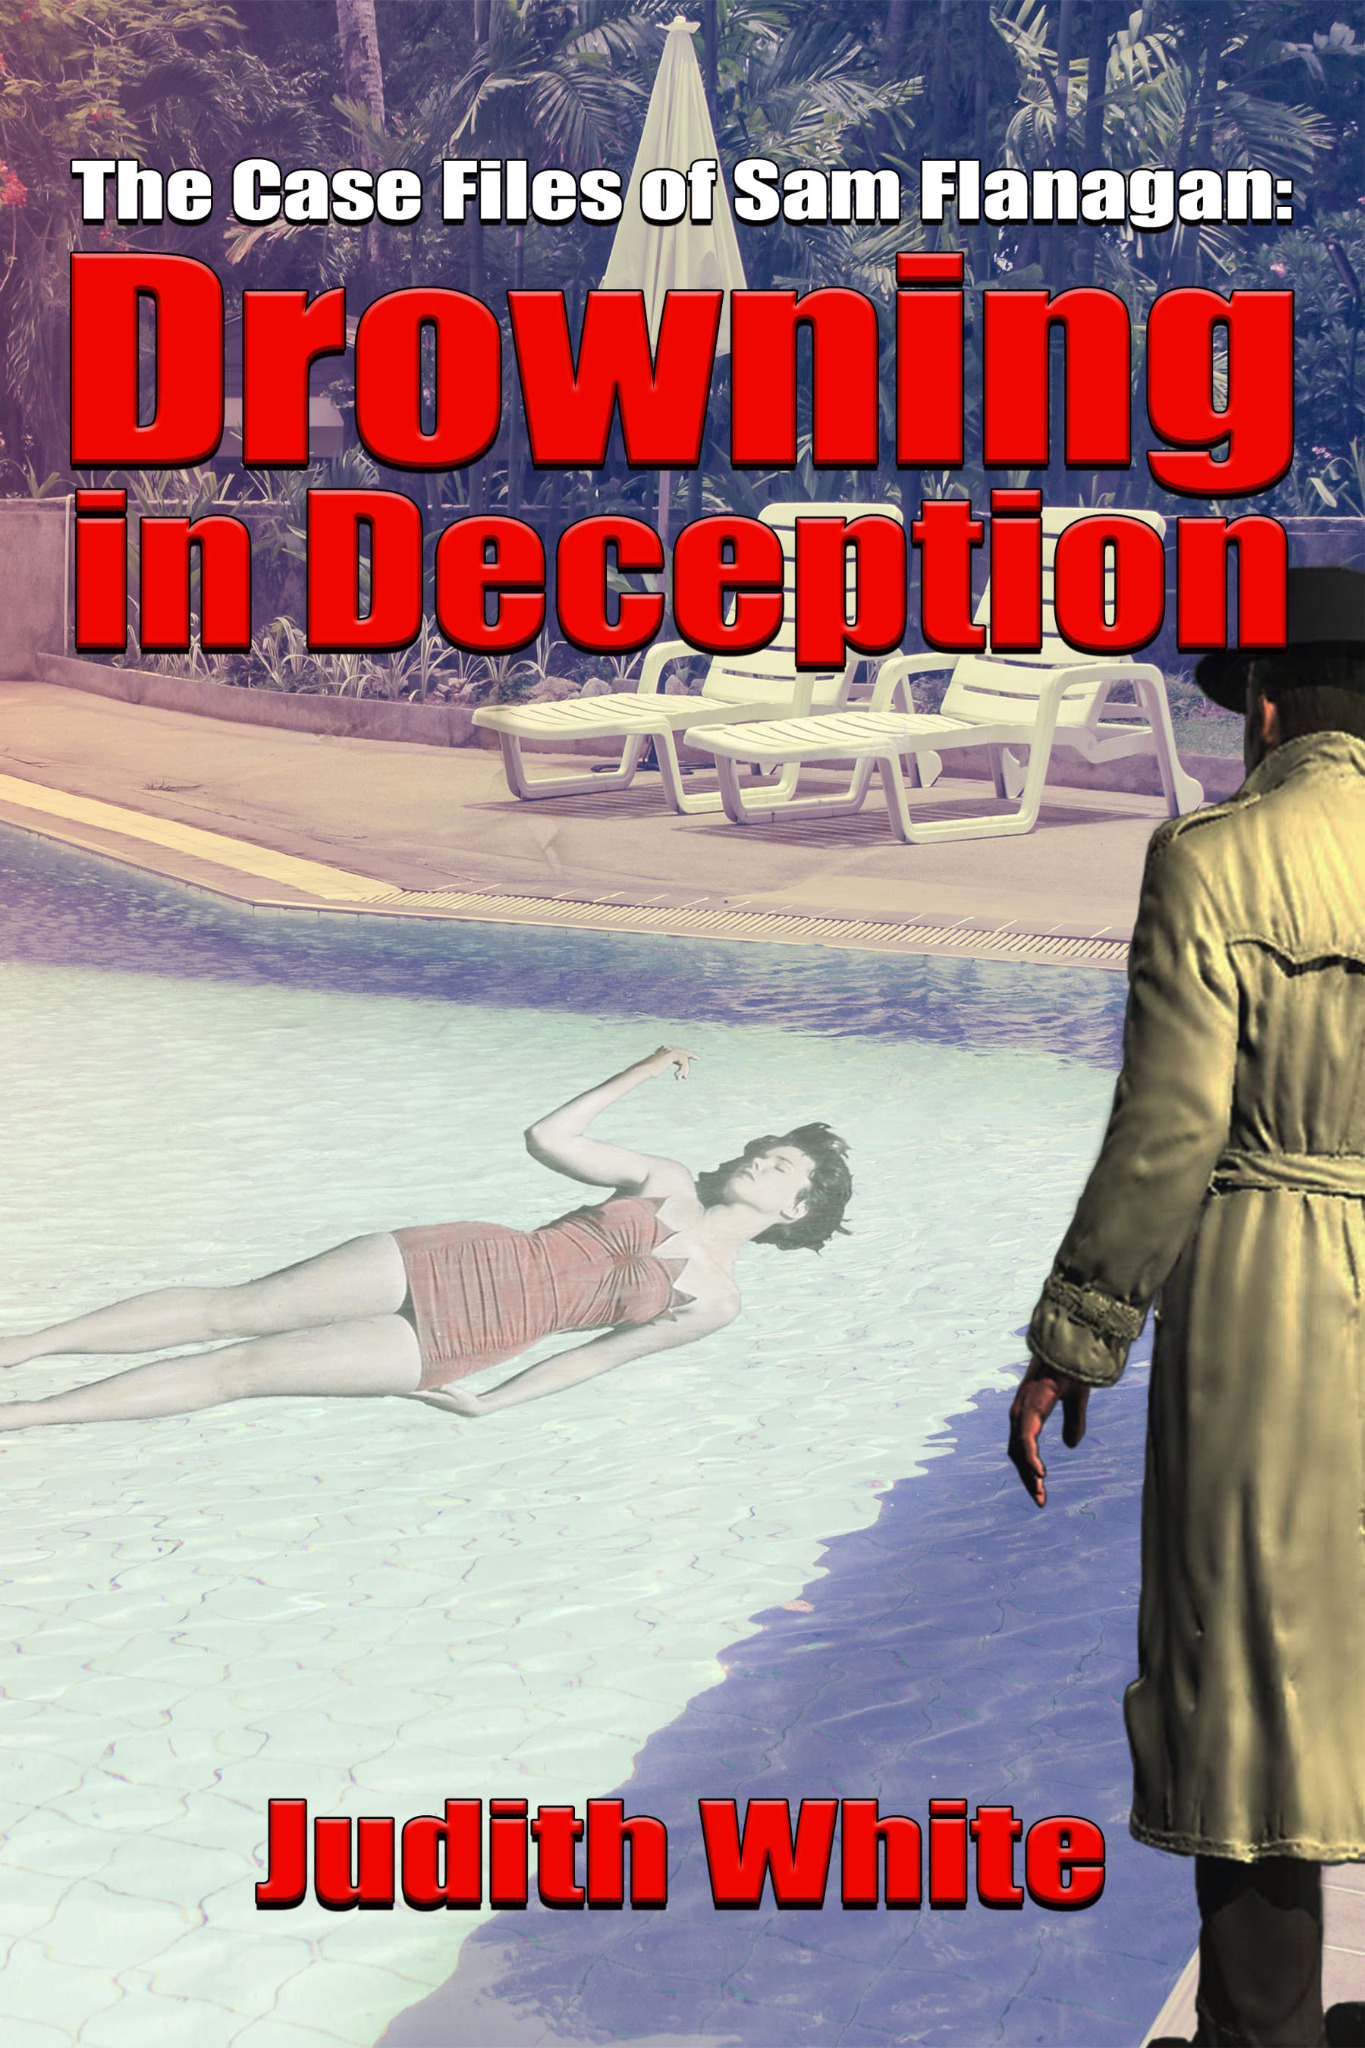 The Case Files of Sam Flanagan:  Drowning in Deception